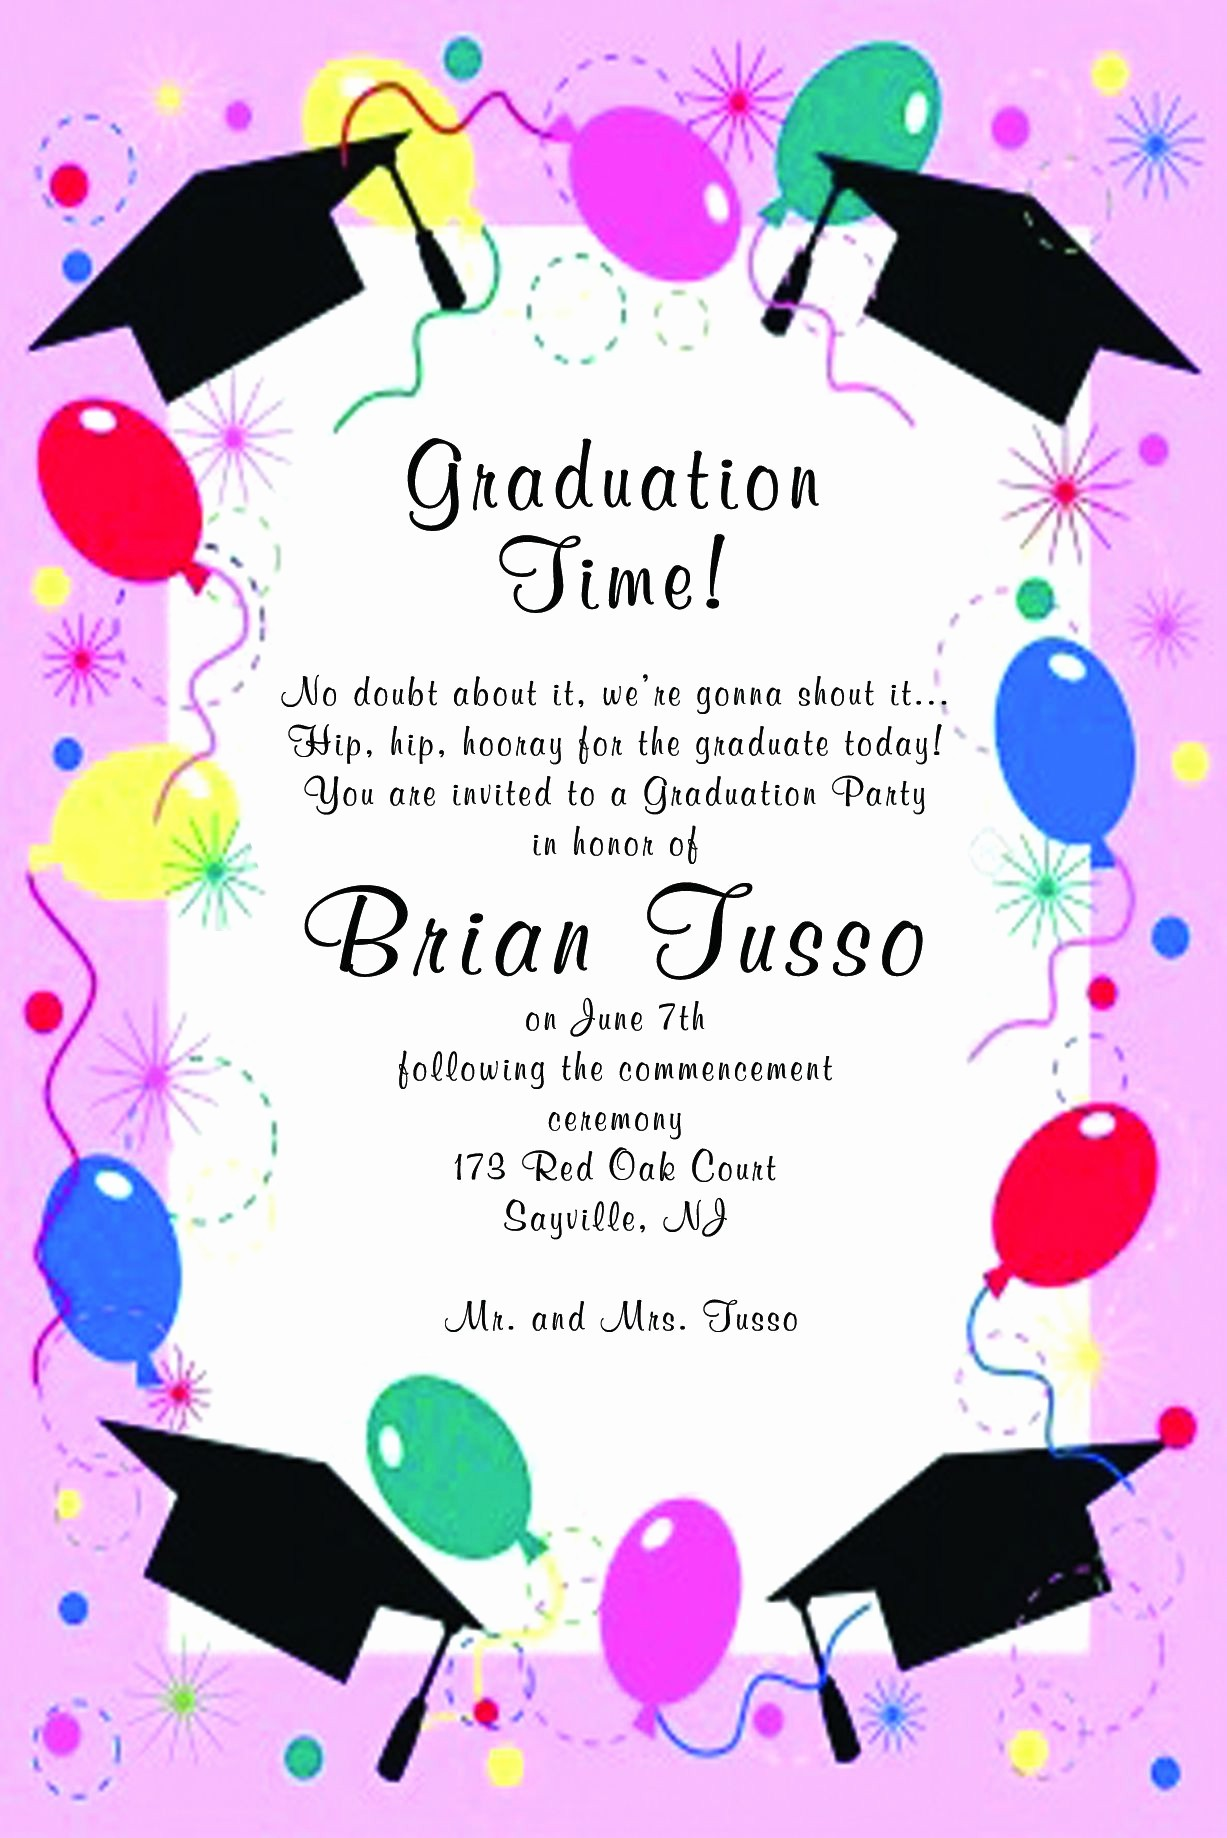 Graduation Party Invitation Template Word Best Of Graduation Invitations Templates